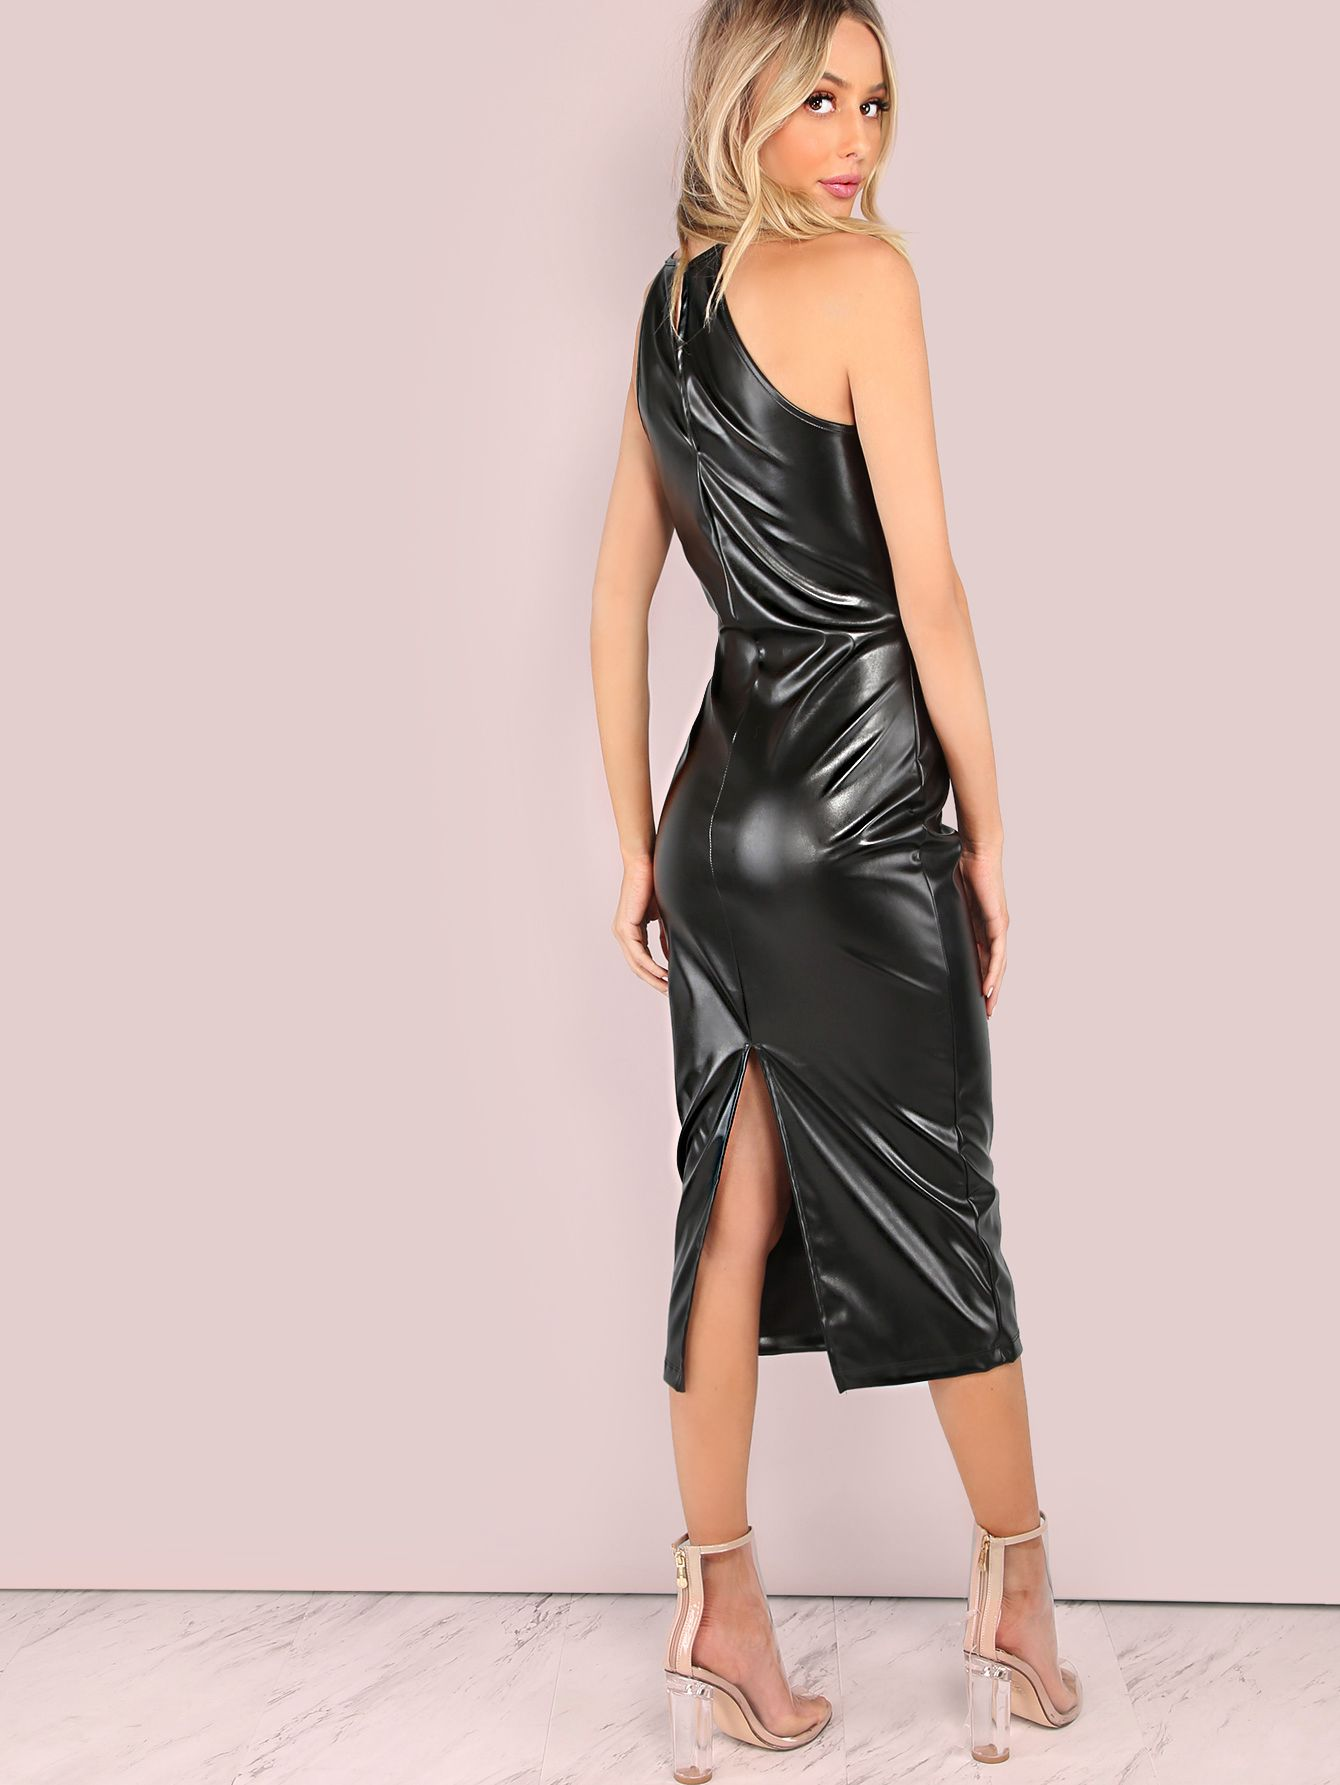 Faux Leather Bodycon Dress Leather Dresses Leather Bodycon Dress Dresses [ 1785 x 1340 Pixel ]